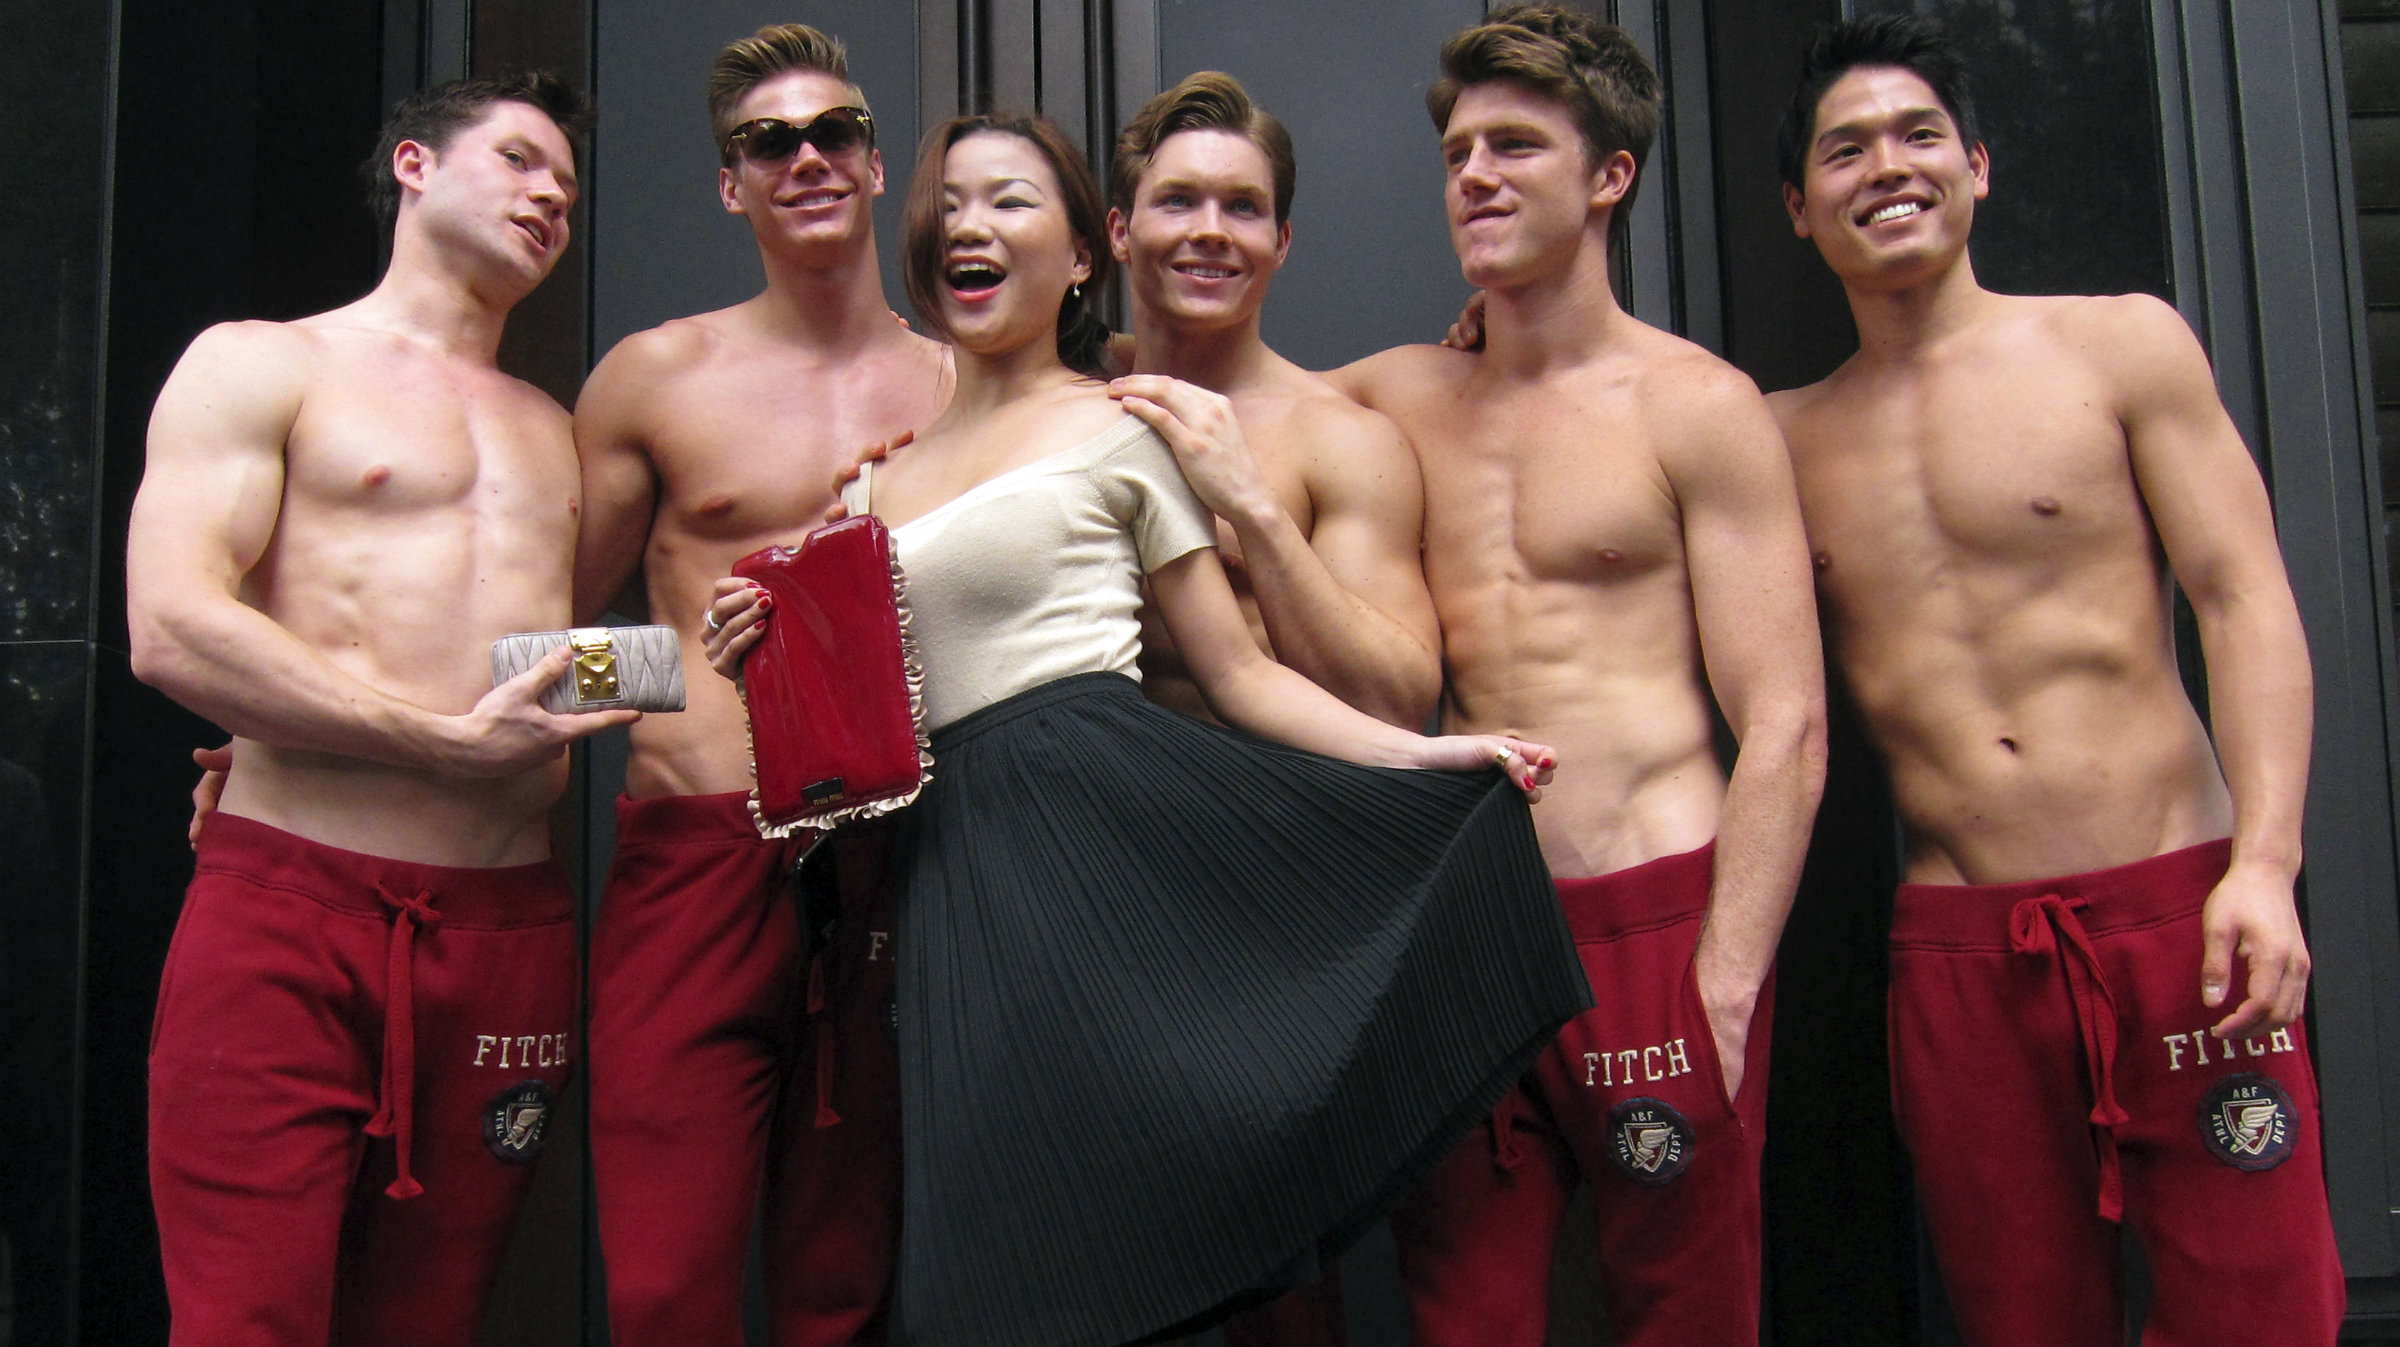 Shirtless And Marching To His Own >> Topless Foreign Men Are China S New Favorite Sales Force Quartz